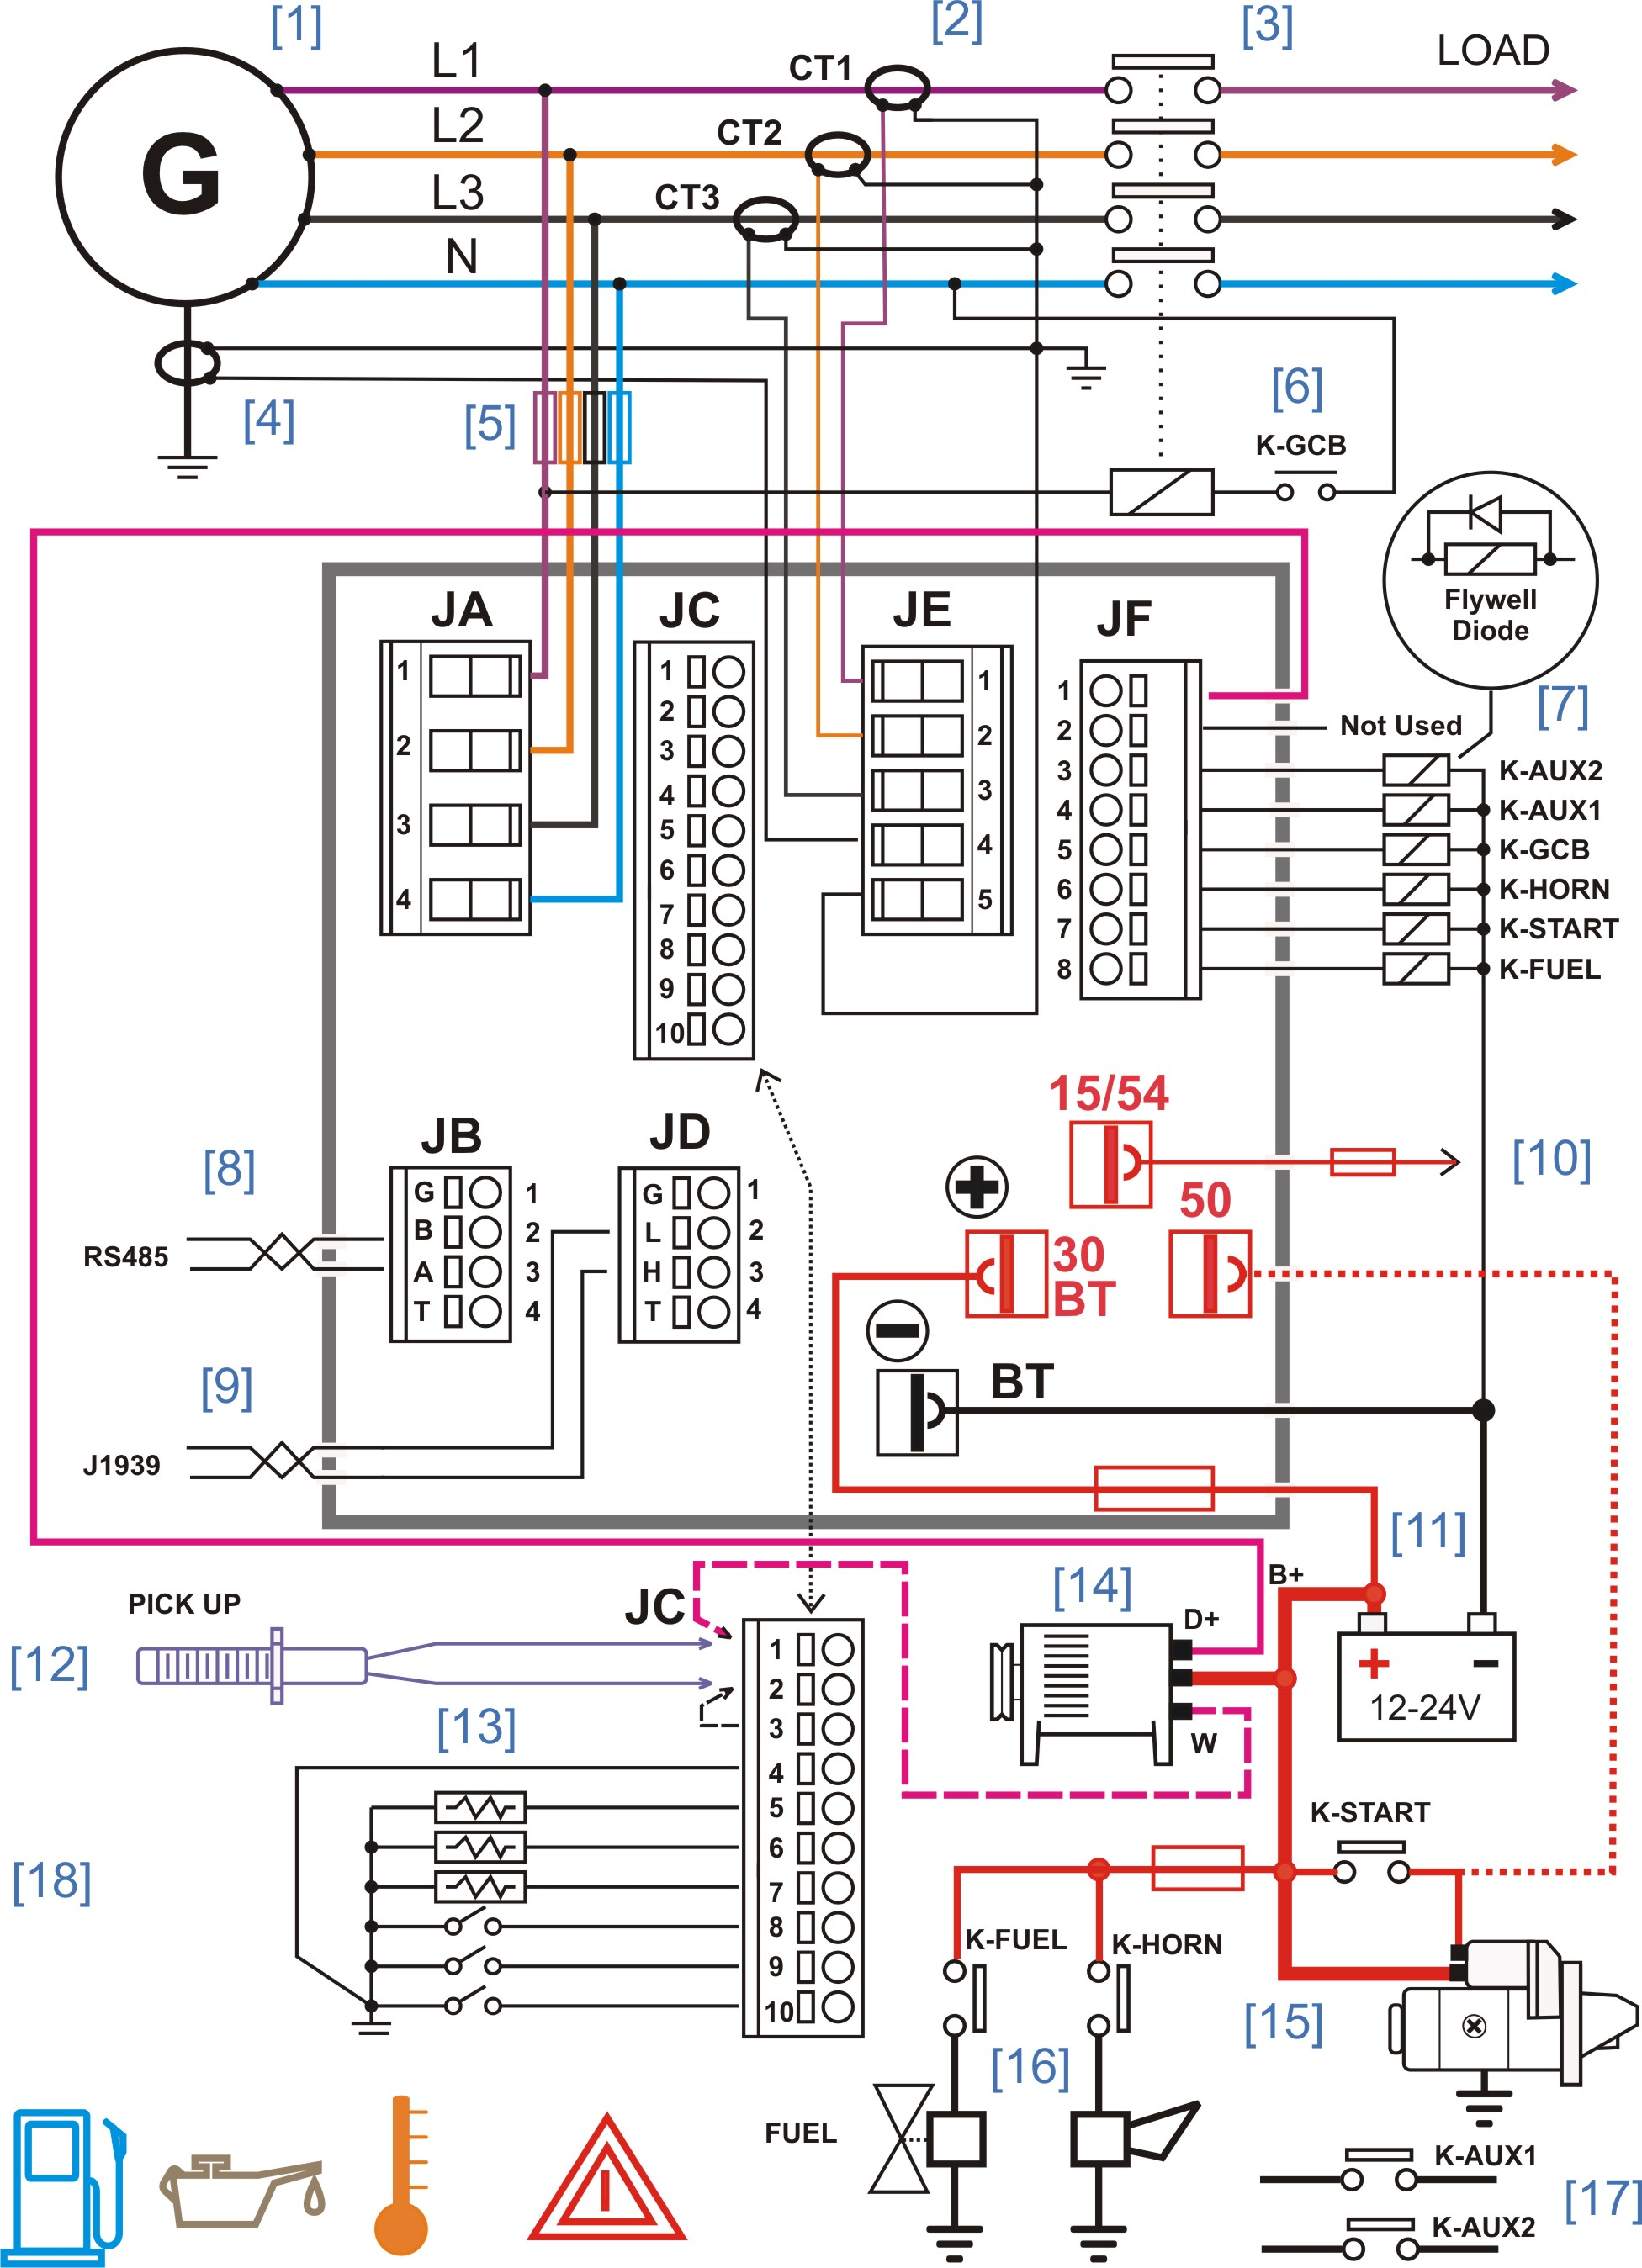 Home wiring diagrams for electrical panels get free for House electrical wiring